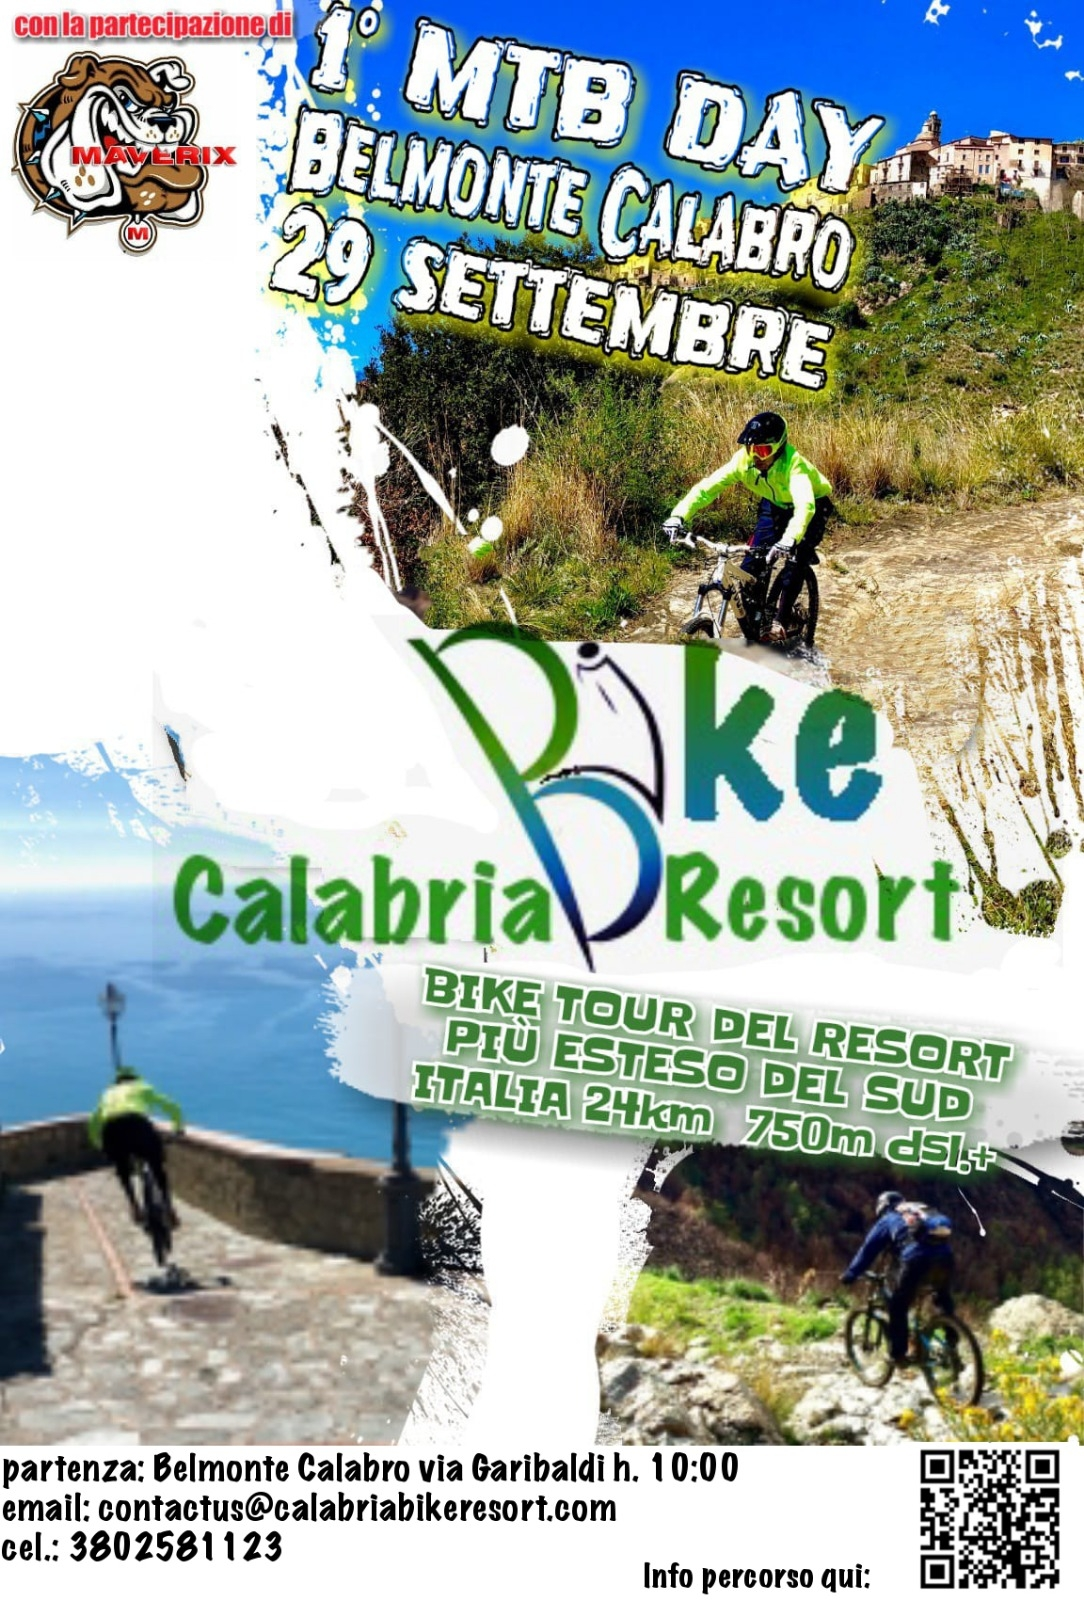 Trail day 29 settembre